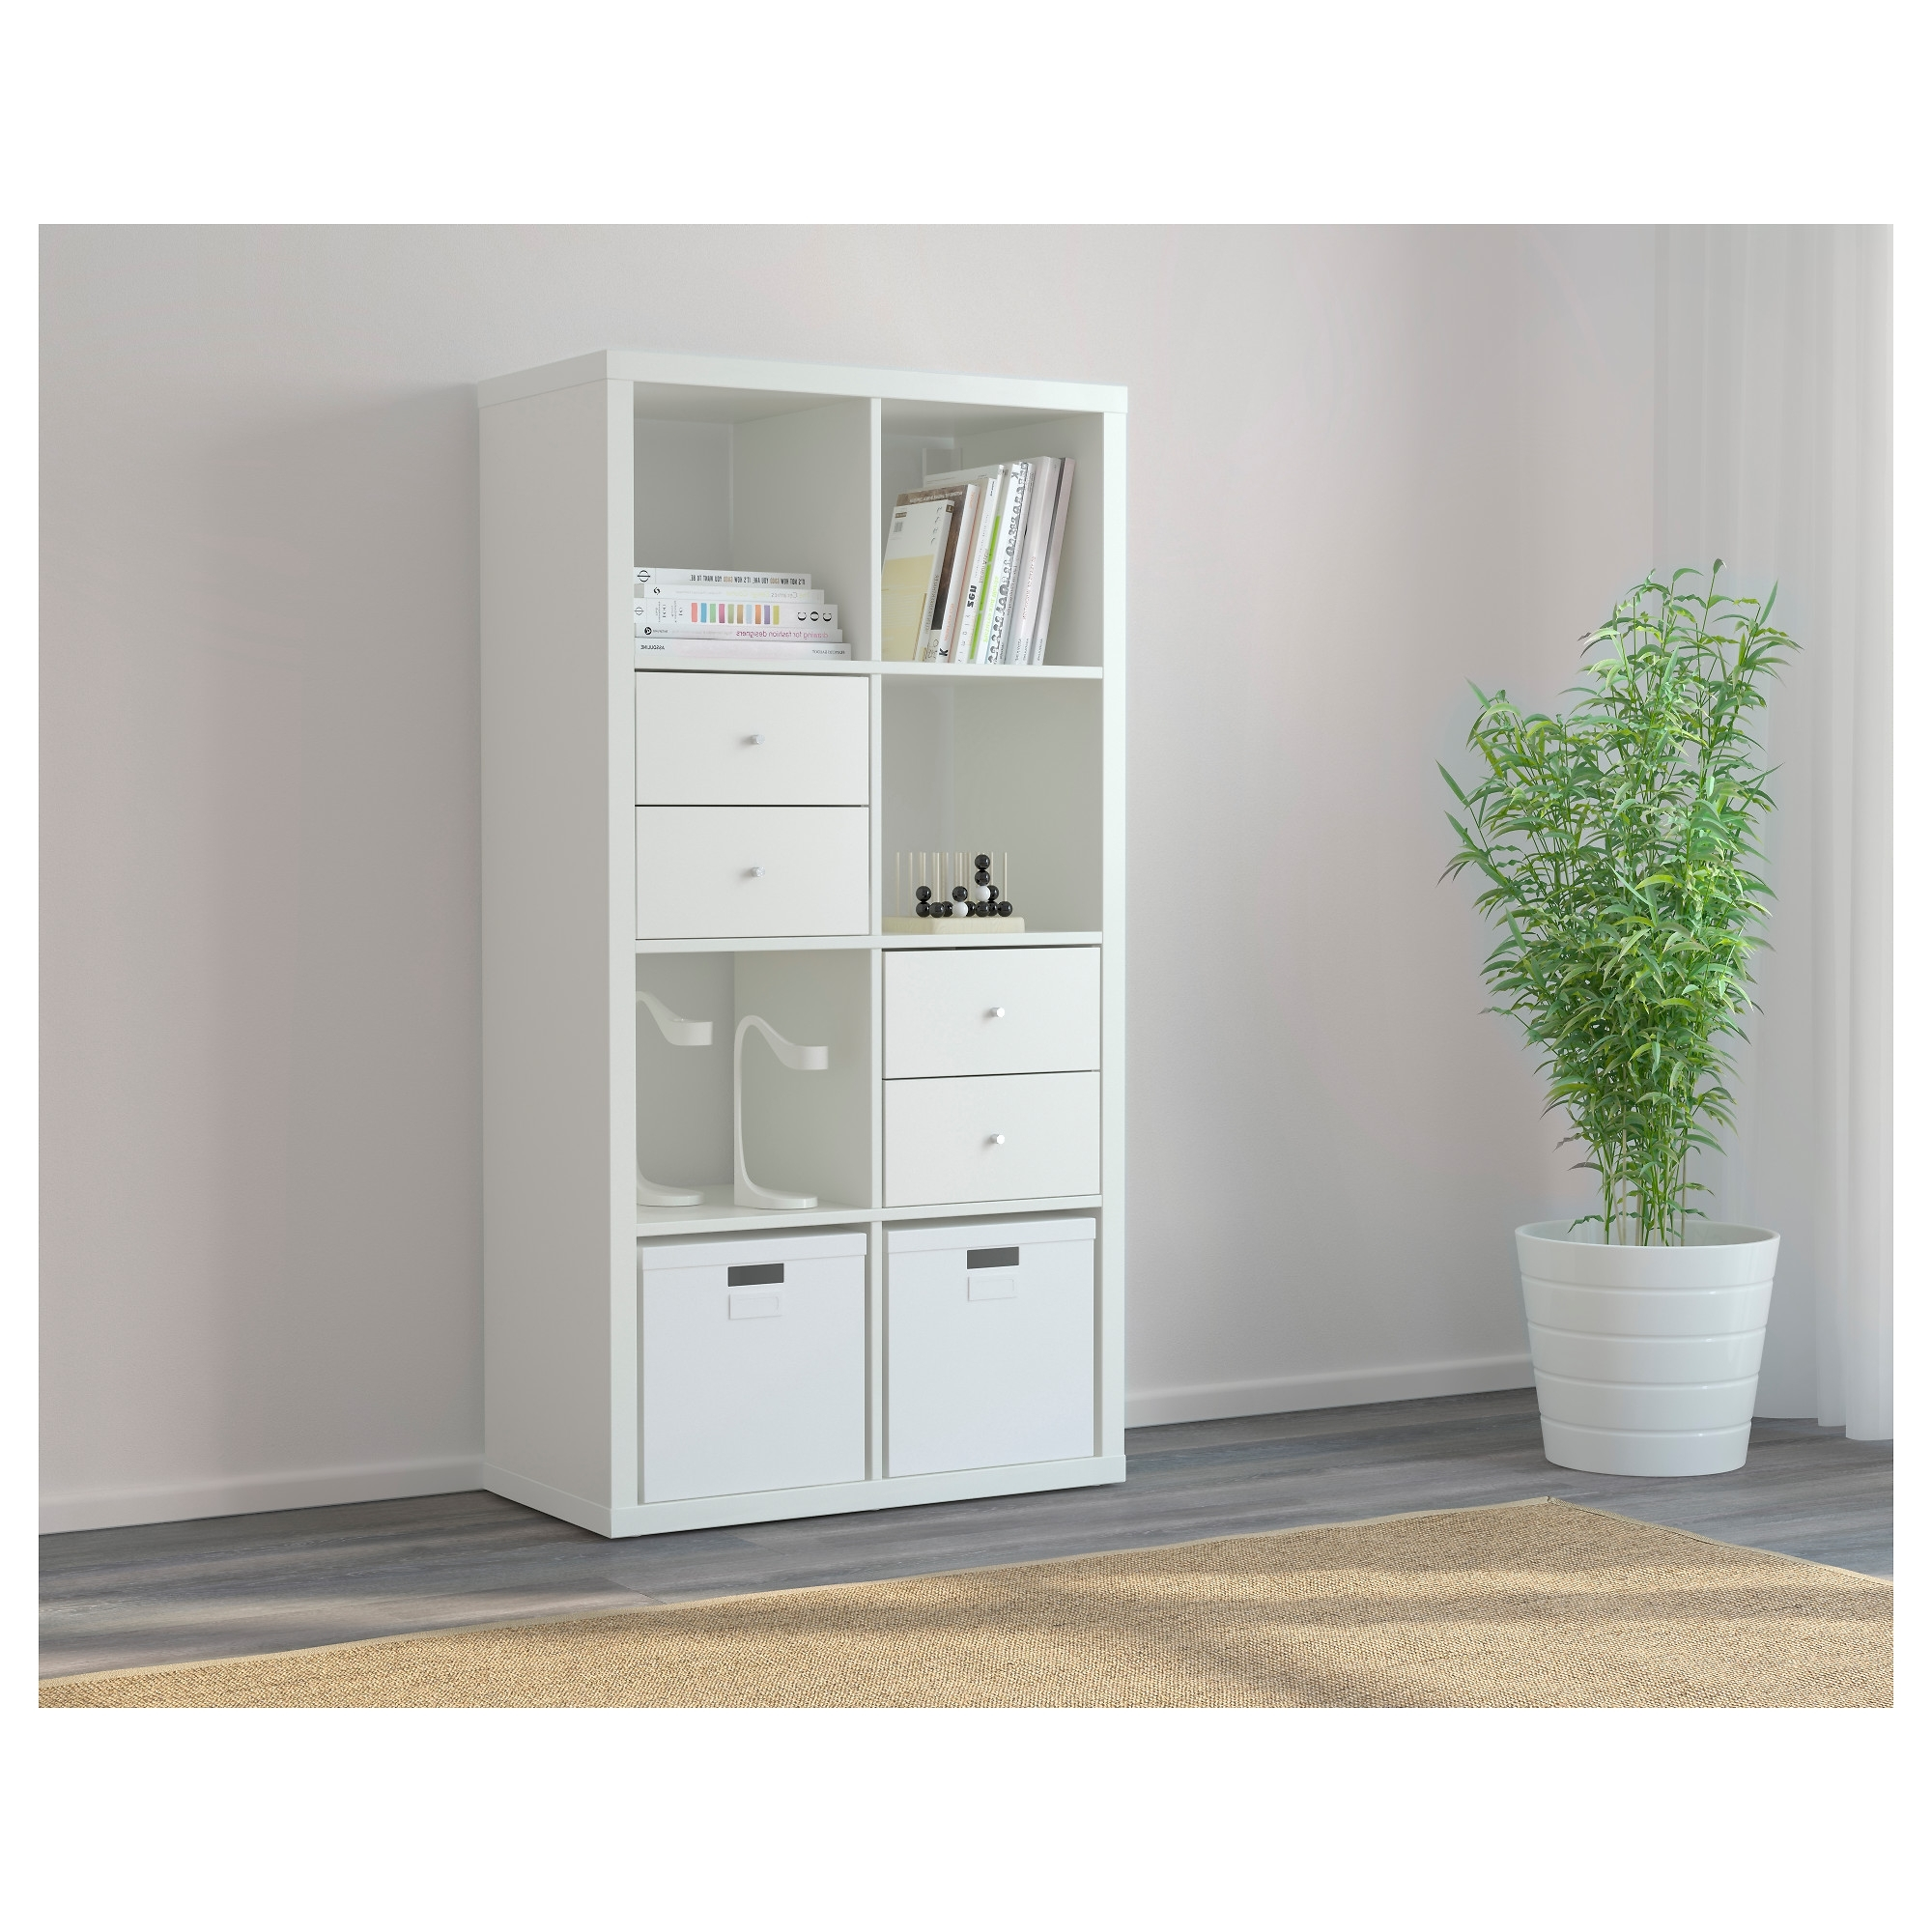 Fashionable Wardrobes Drawers And Shelves Ikea Throughout Kallax Shelving Unit – White, 77X147 Cm – Ikea (View 6 of 15)